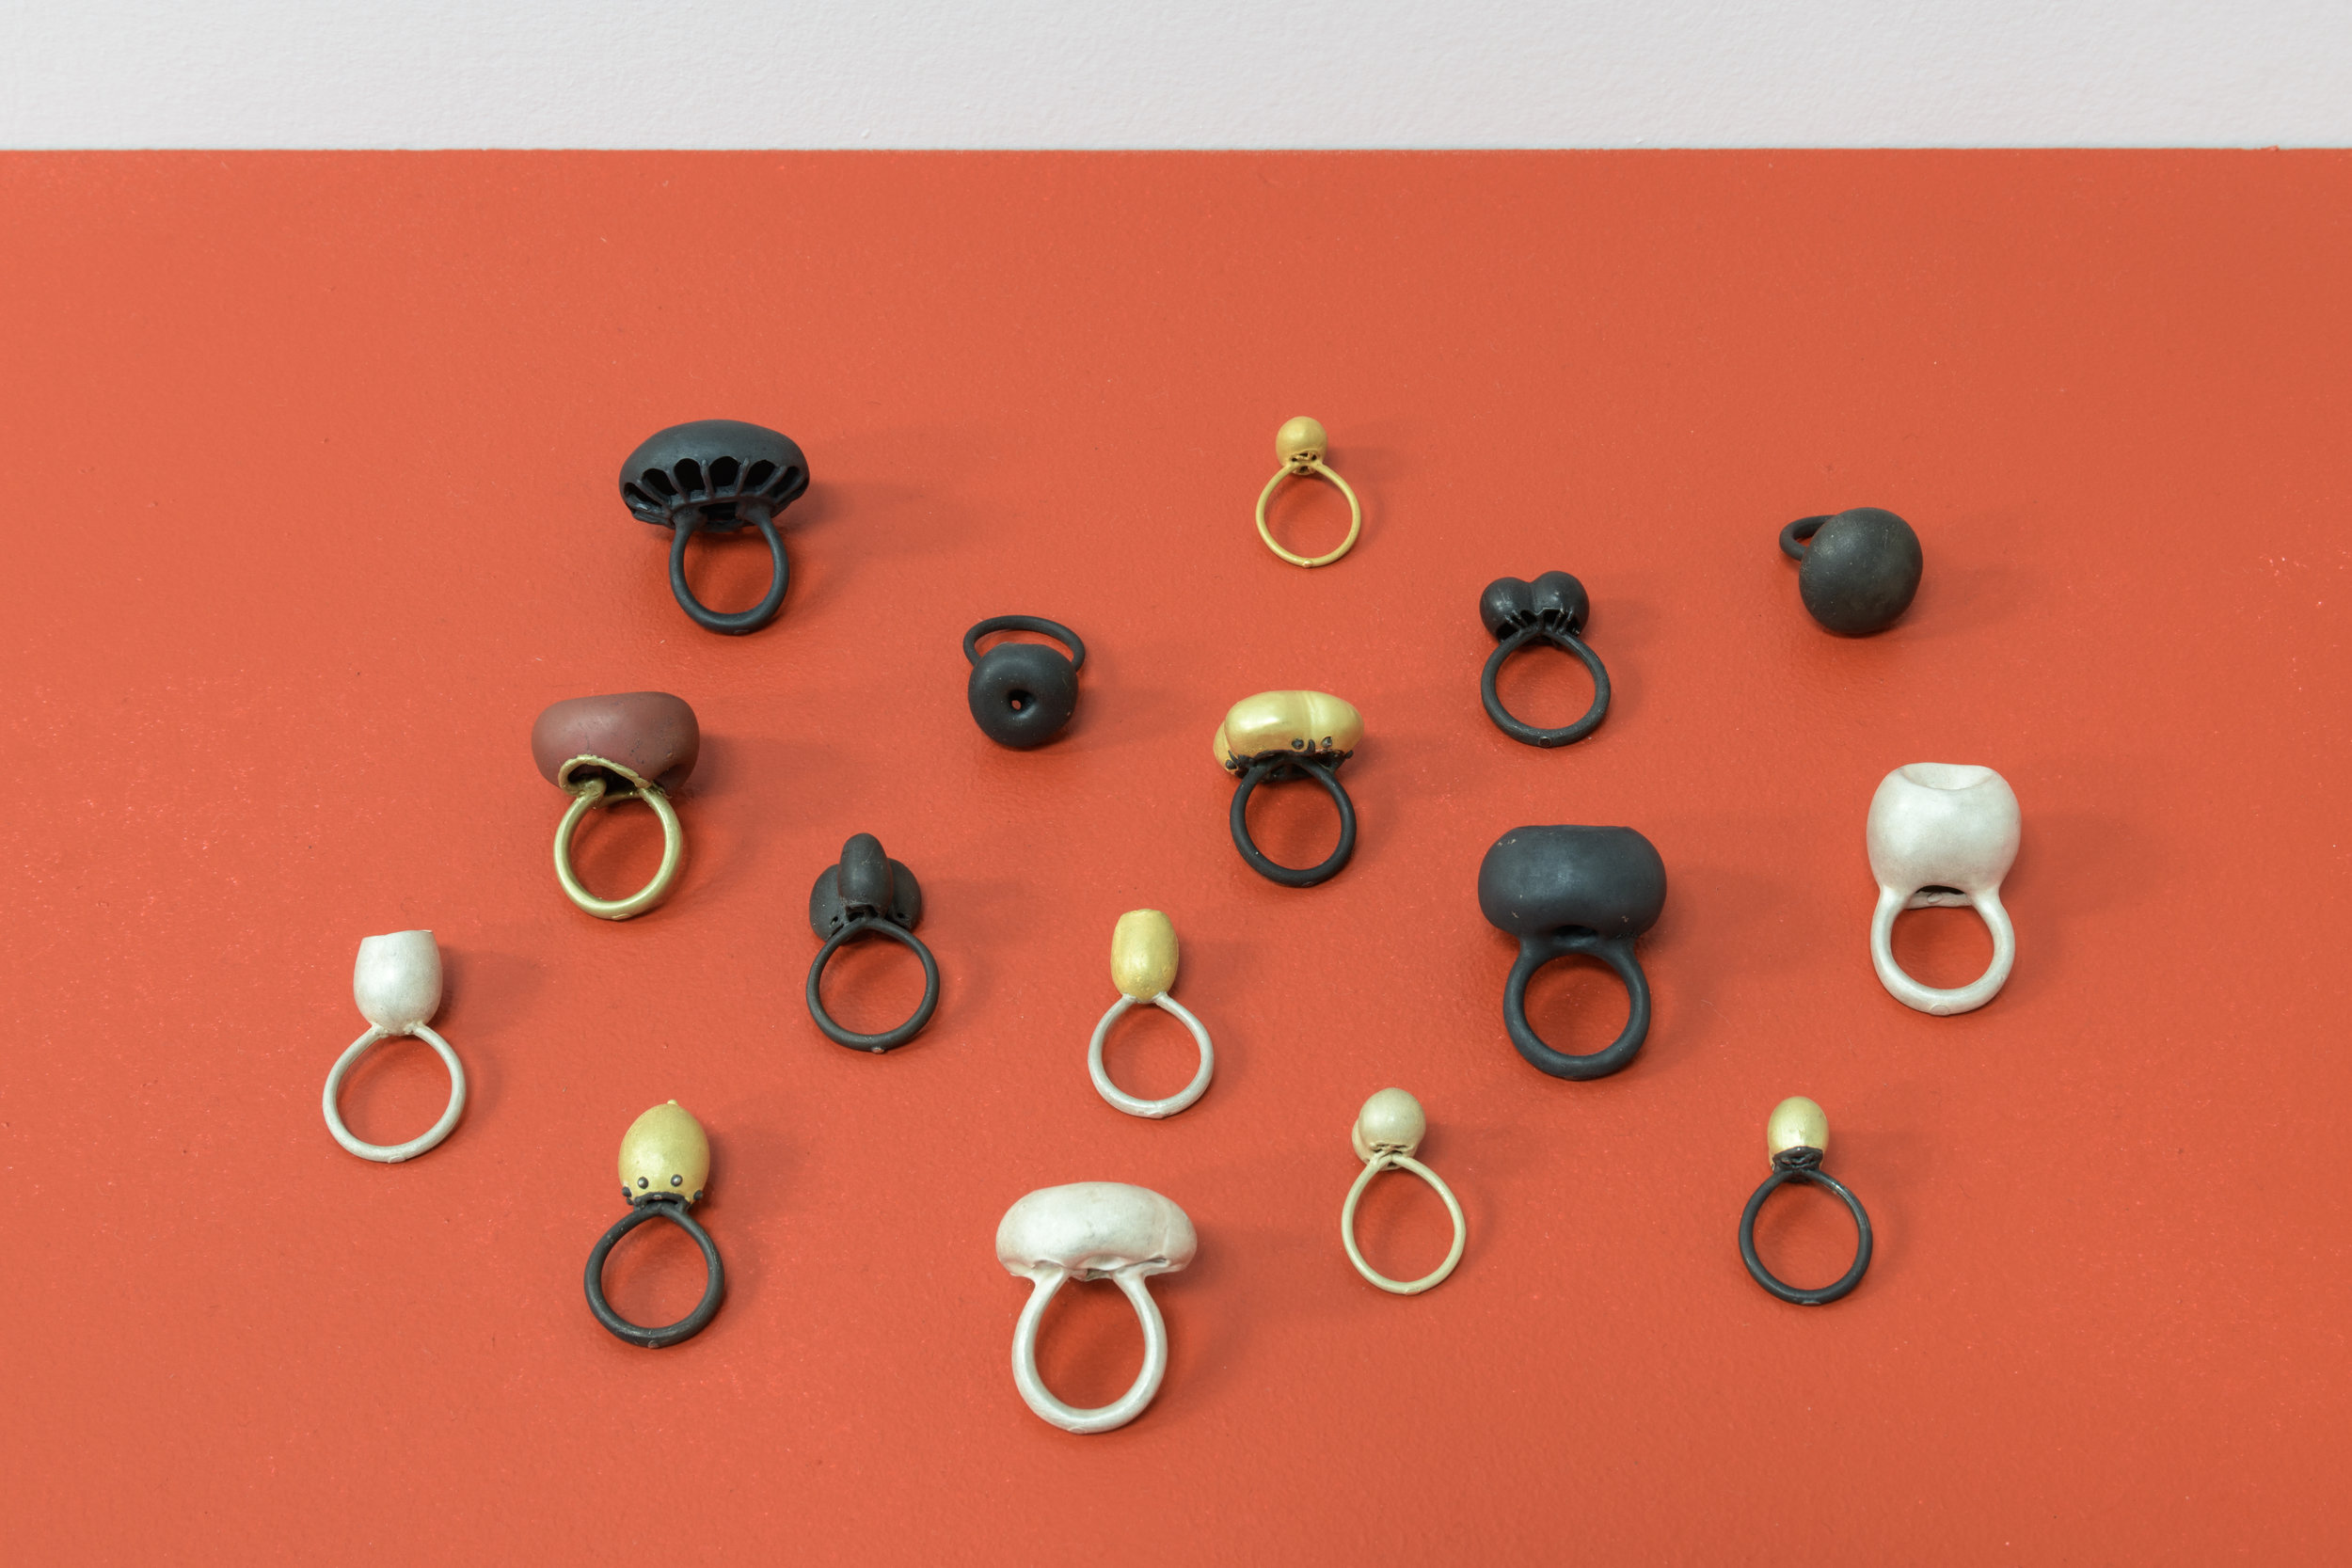 Peter Bauhuis,  Rings , 2018. Image courtesy of The National, Christchurch. Photo by John Collie.